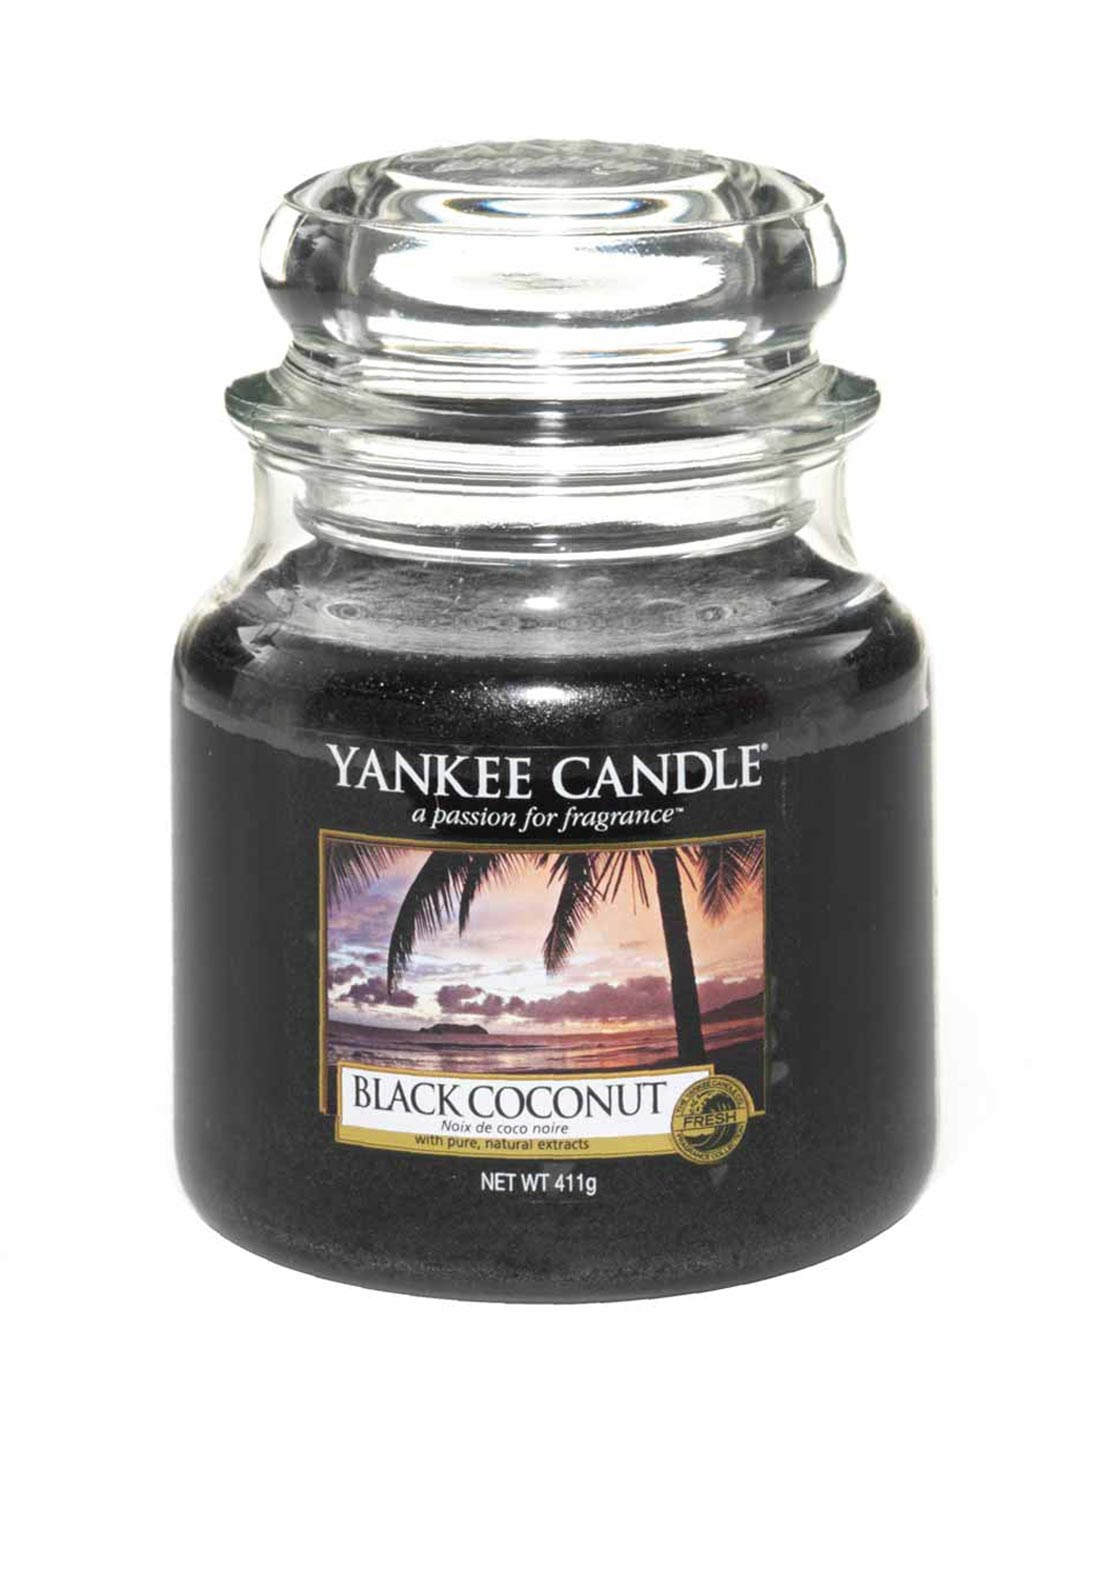 Yankee Candle Medium Classic Jar, Pink Grapefruit, Black Coconut